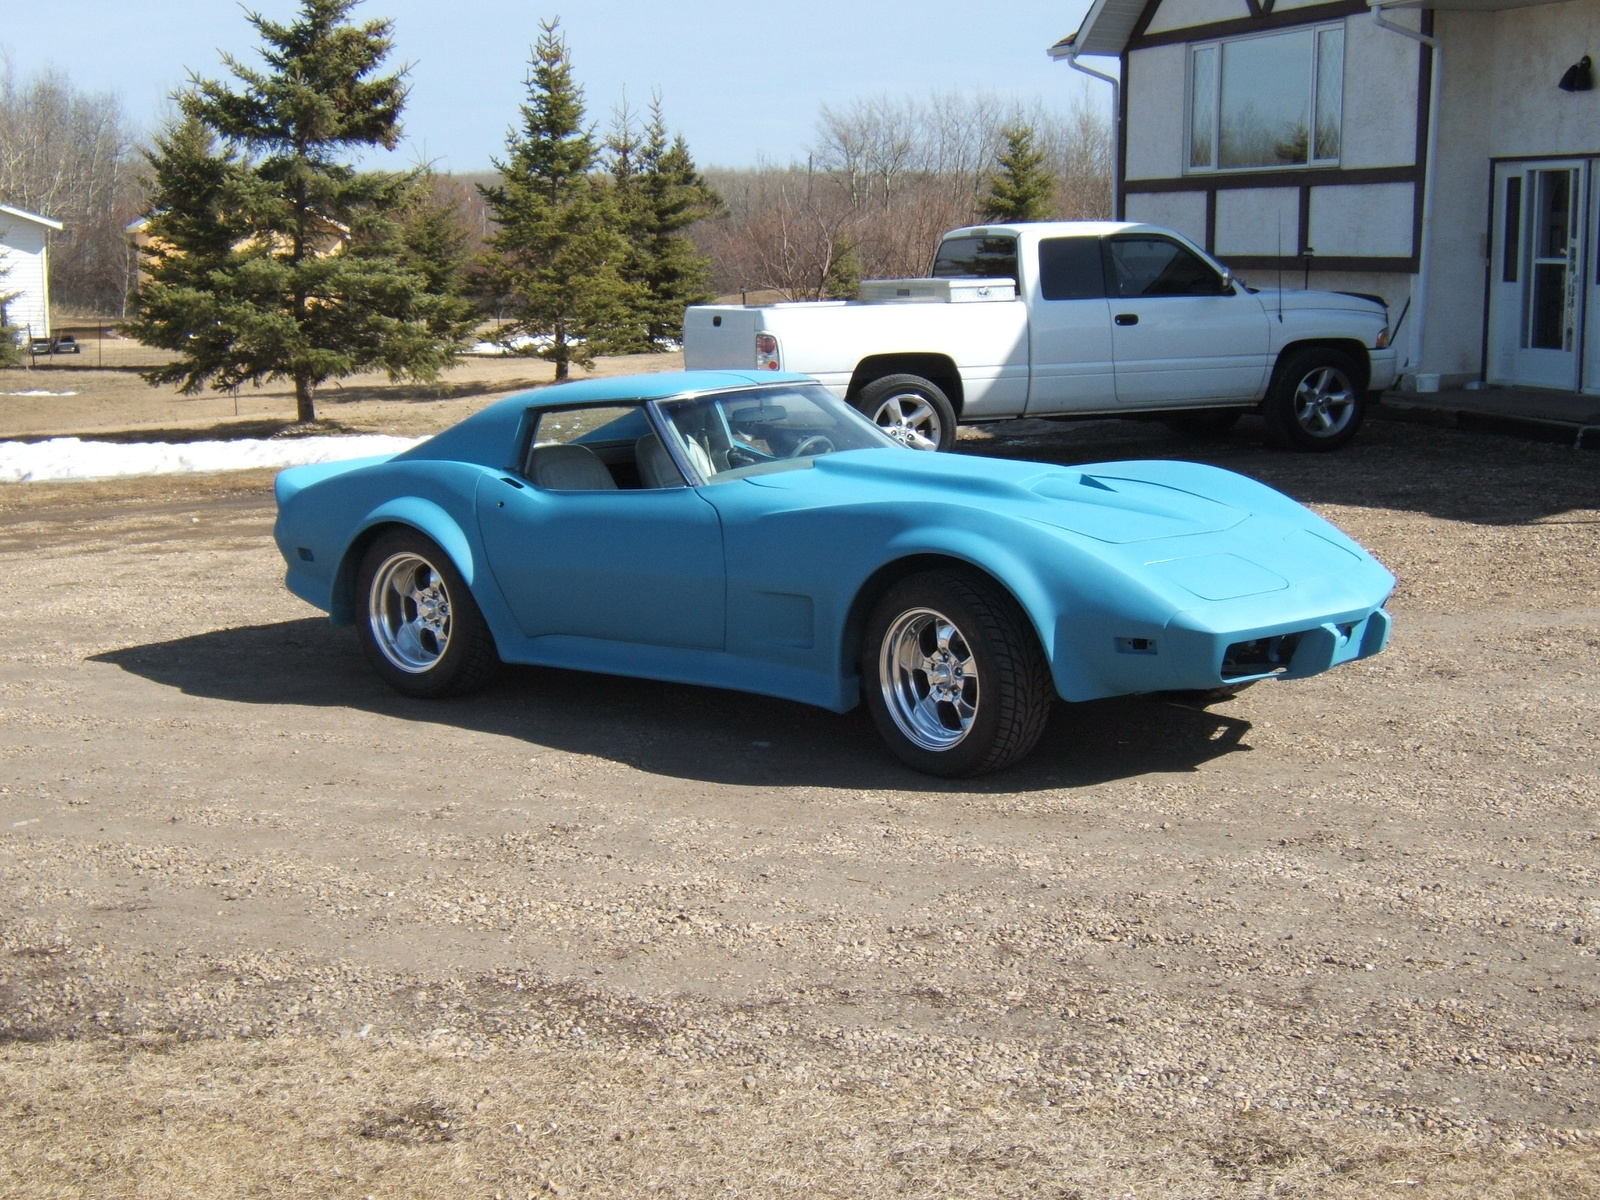 1976 Chevrolet Corvette picture, exterior